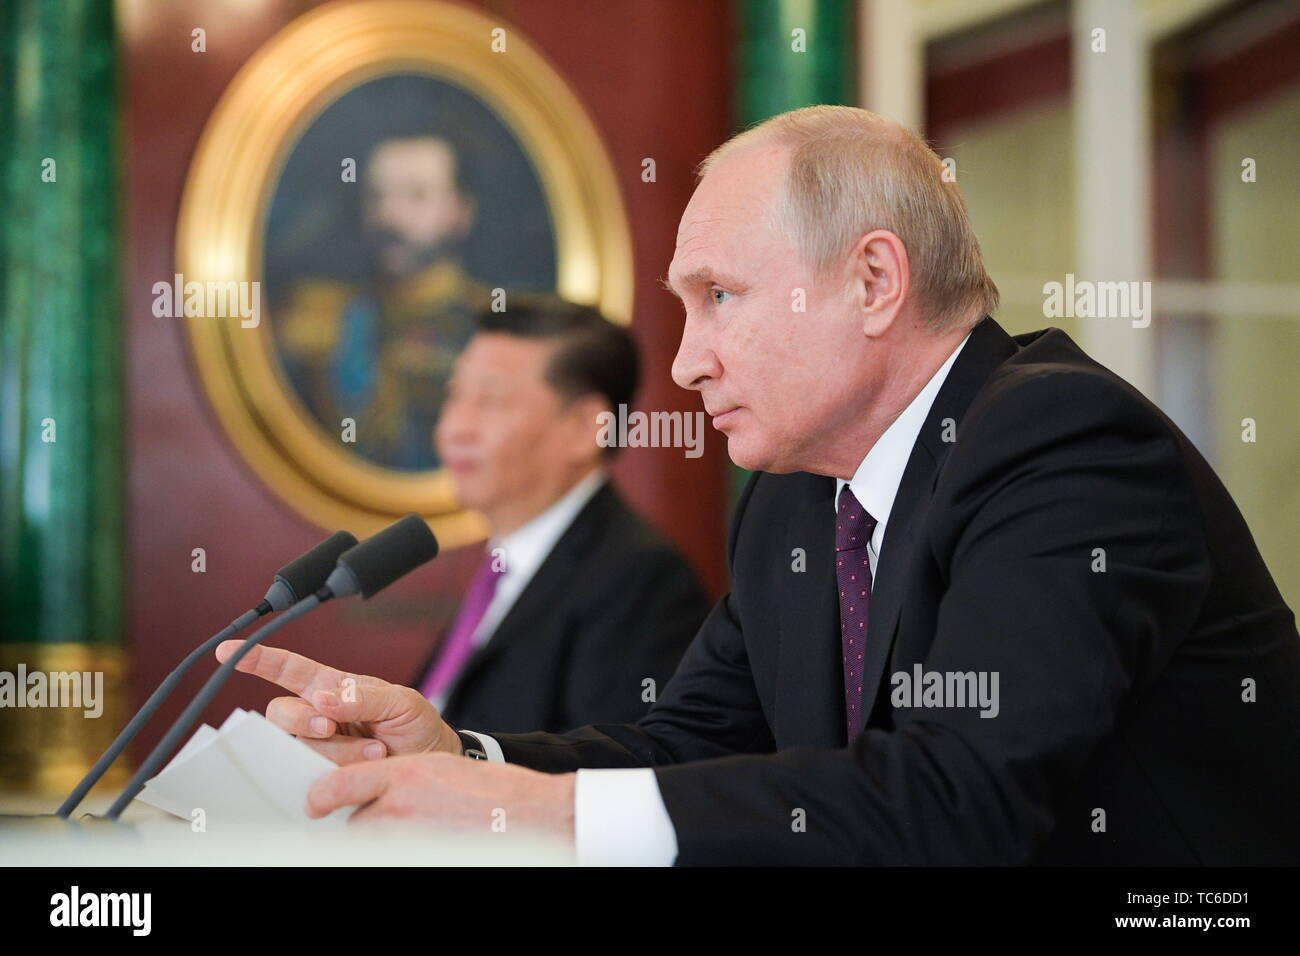 Moscow, Russia. 05th June, 2019. MOSCOW, RUSSIA - JUNE 5, 2019: Russia's President Vladimir Putin (R) and China's President Xi Jinping make a statement for the press following Russian-Chinese talks at the Moscow Kremlin. Alexei Druzhinin/Russian Presidential Press and Information Office/TASS Credit: ITAR-TASS News Agency/Alamy Live News - Stock Image